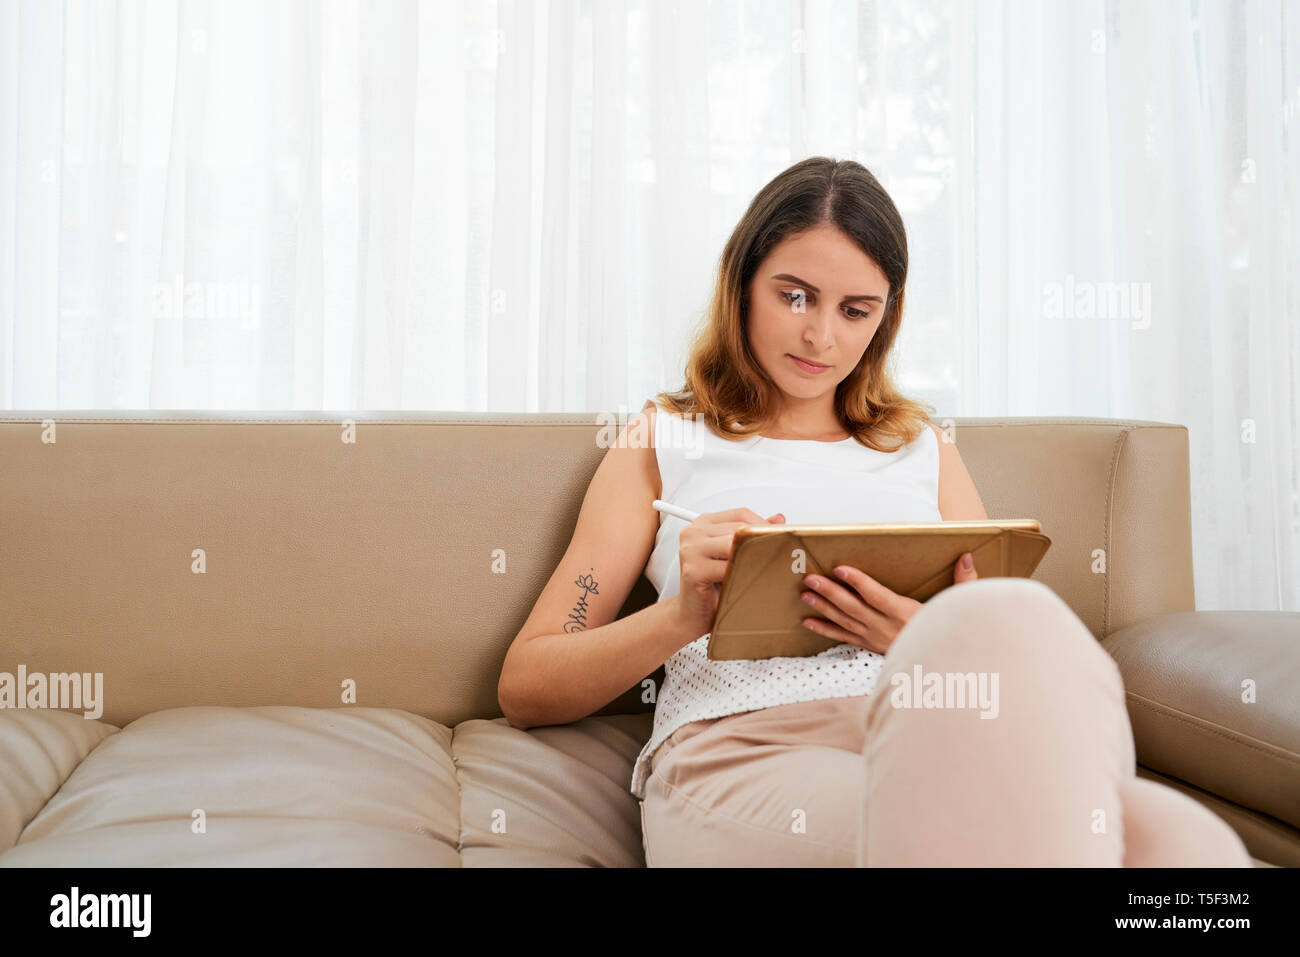 Woman drawing on tablet computer - Stock Image